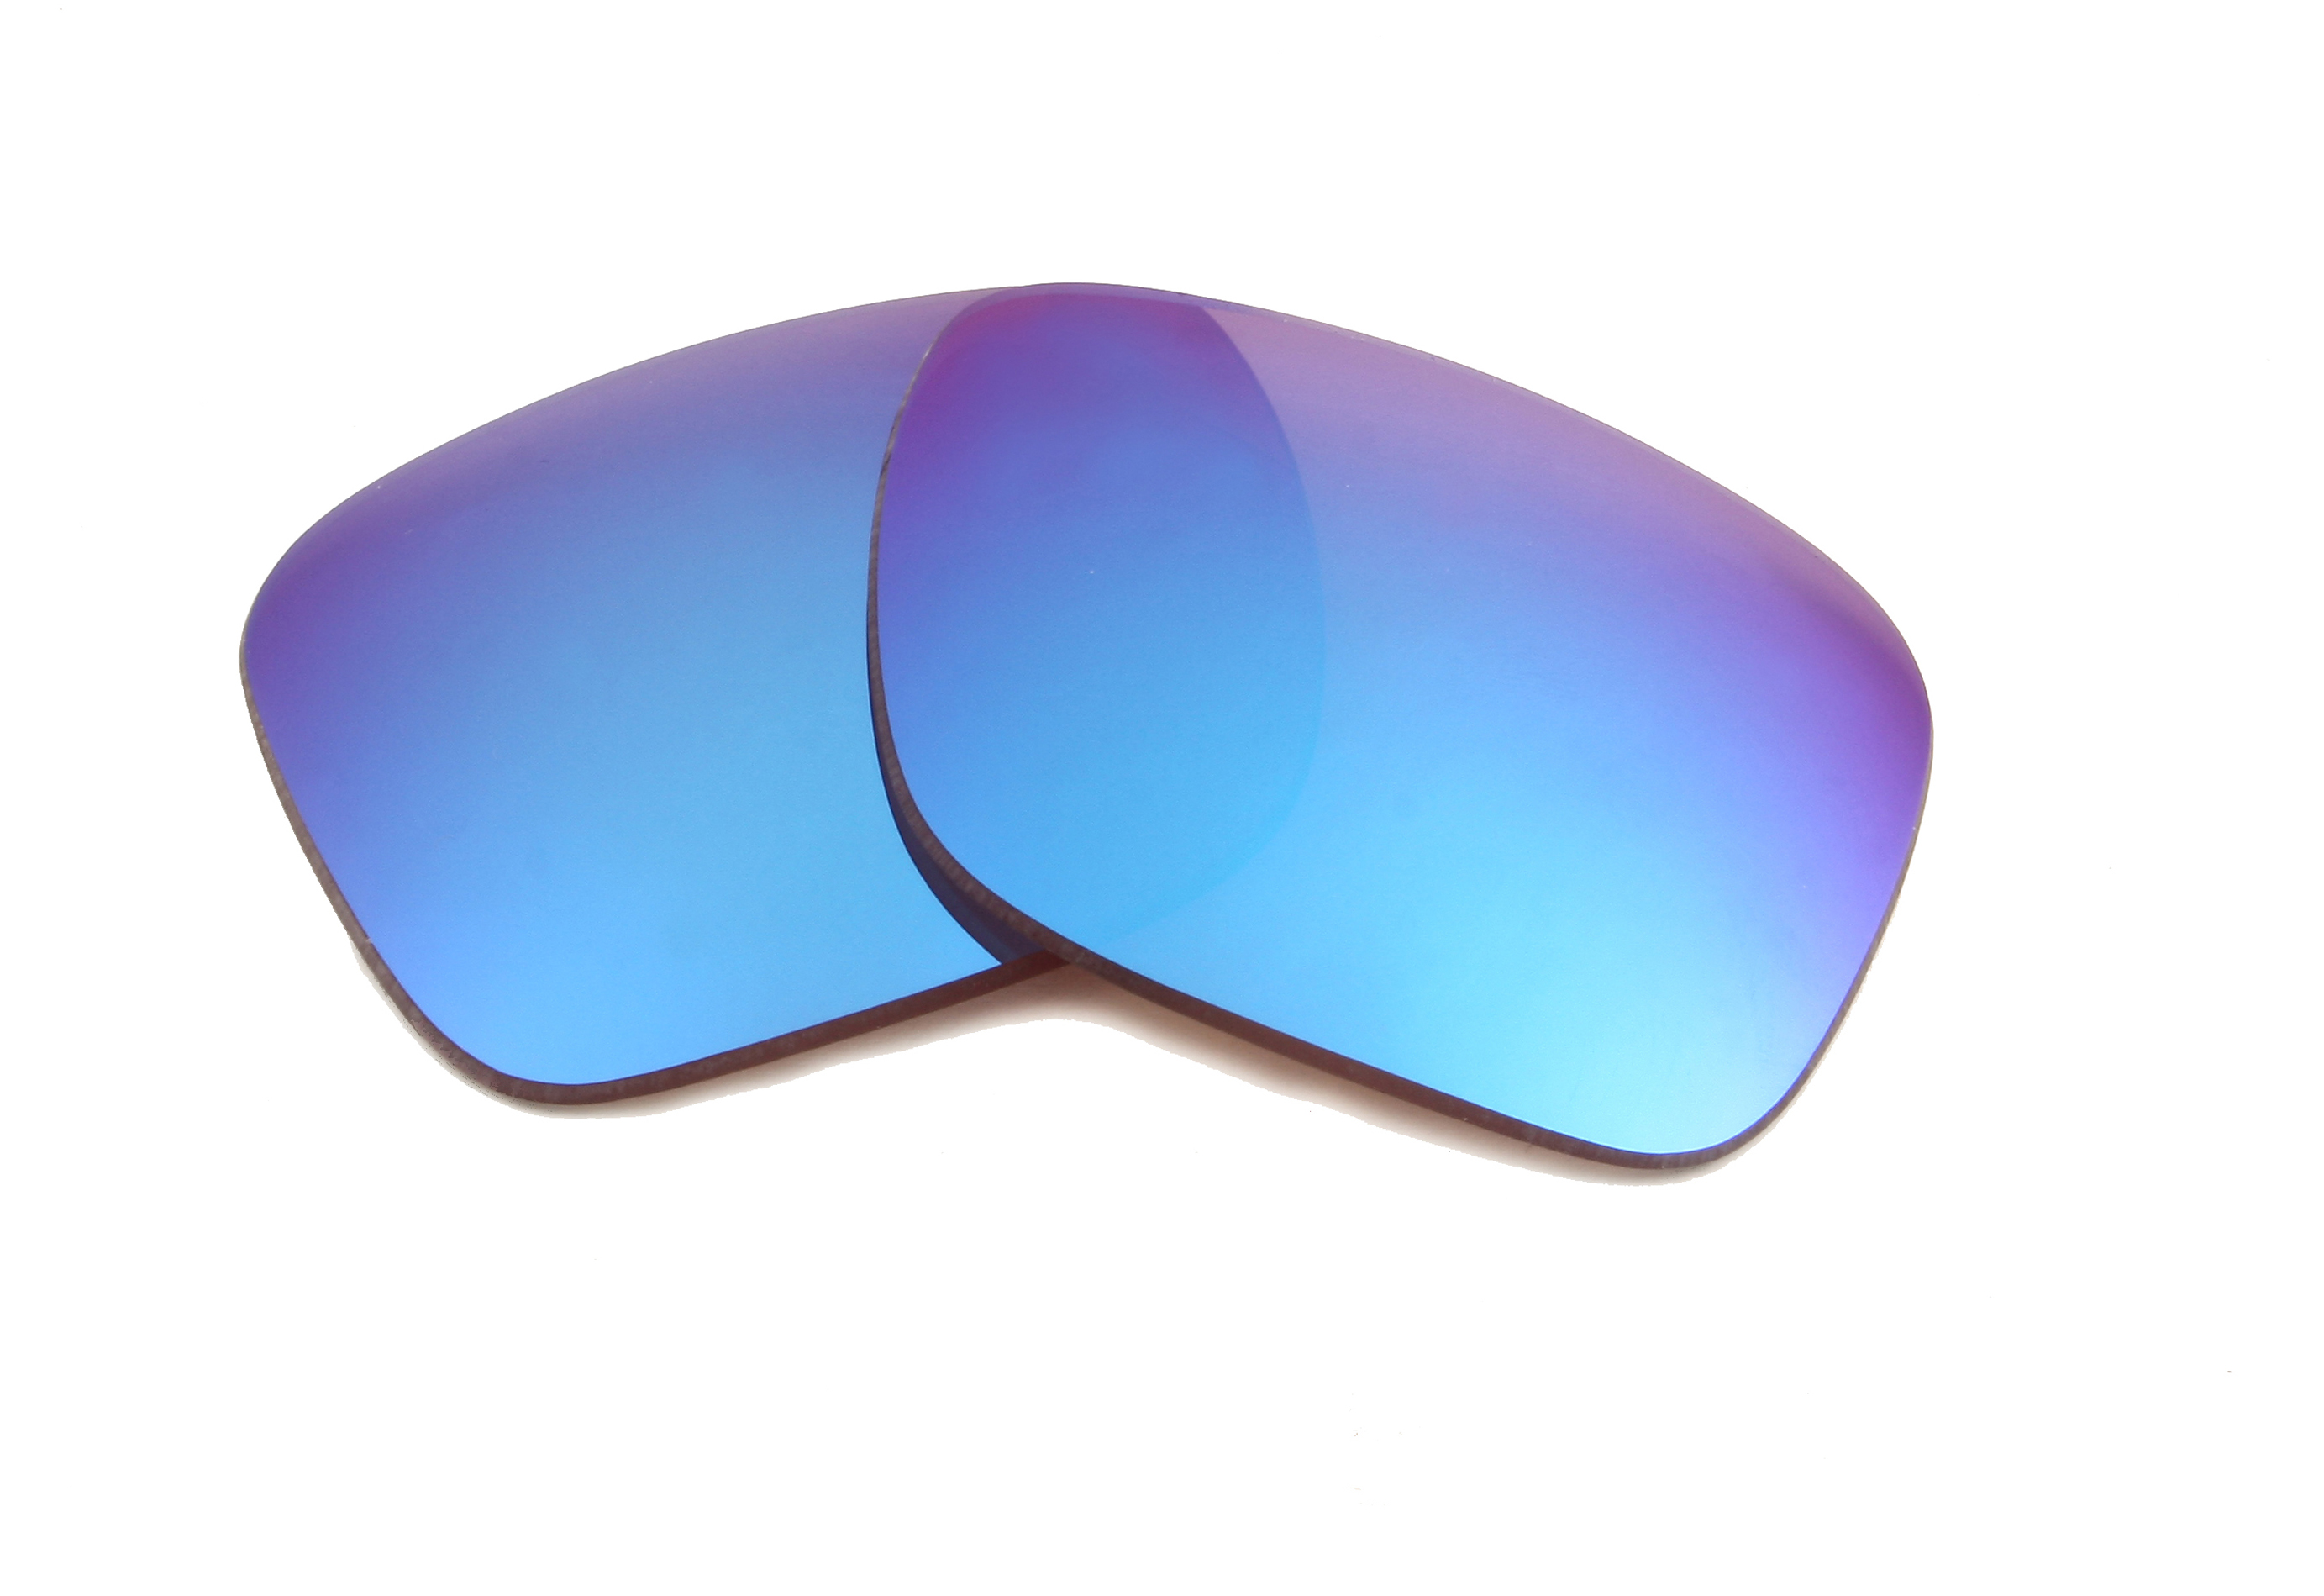 1fb2d6aad6 Image is loading Cyrus-Replacement-Lenses-Polarized-Blue-Mirror-by-SEEK-